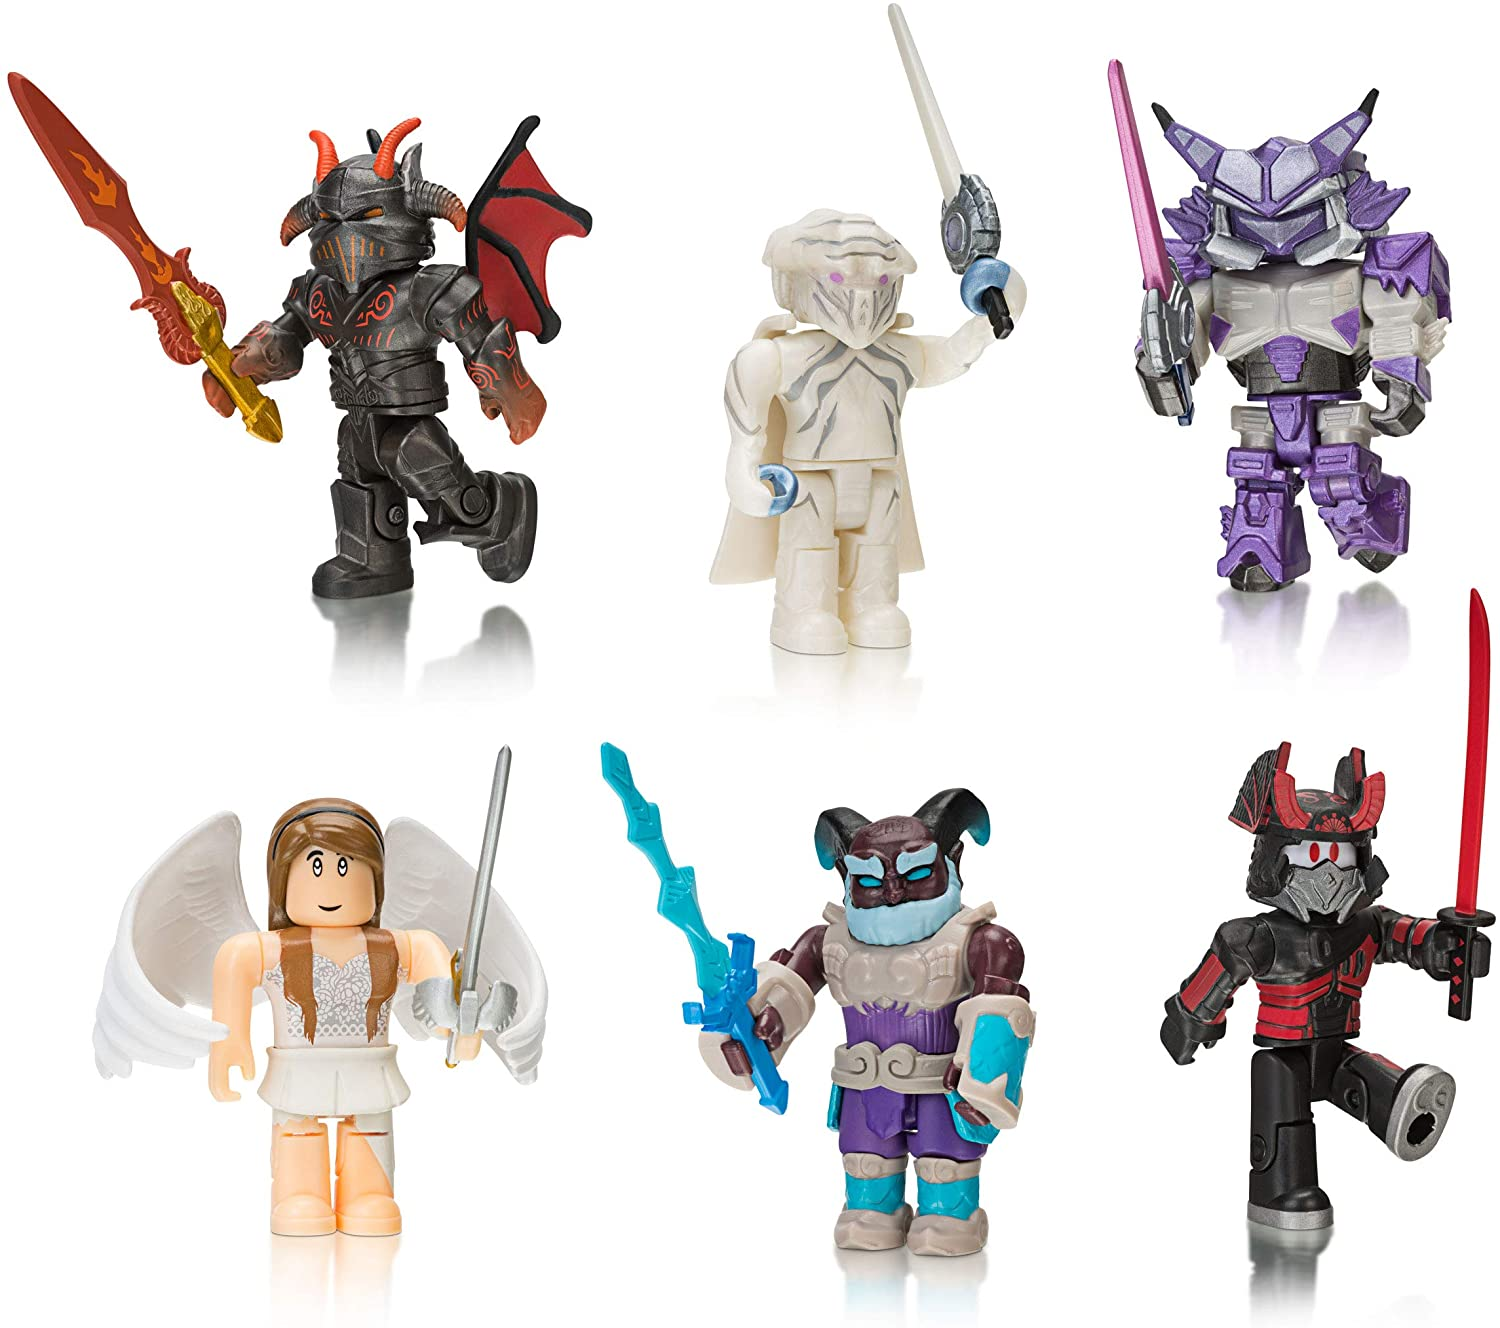 Roblox Action Collection - Summoner Tycoon Six Figure Pack [Includes Exclusive Virtual Item]